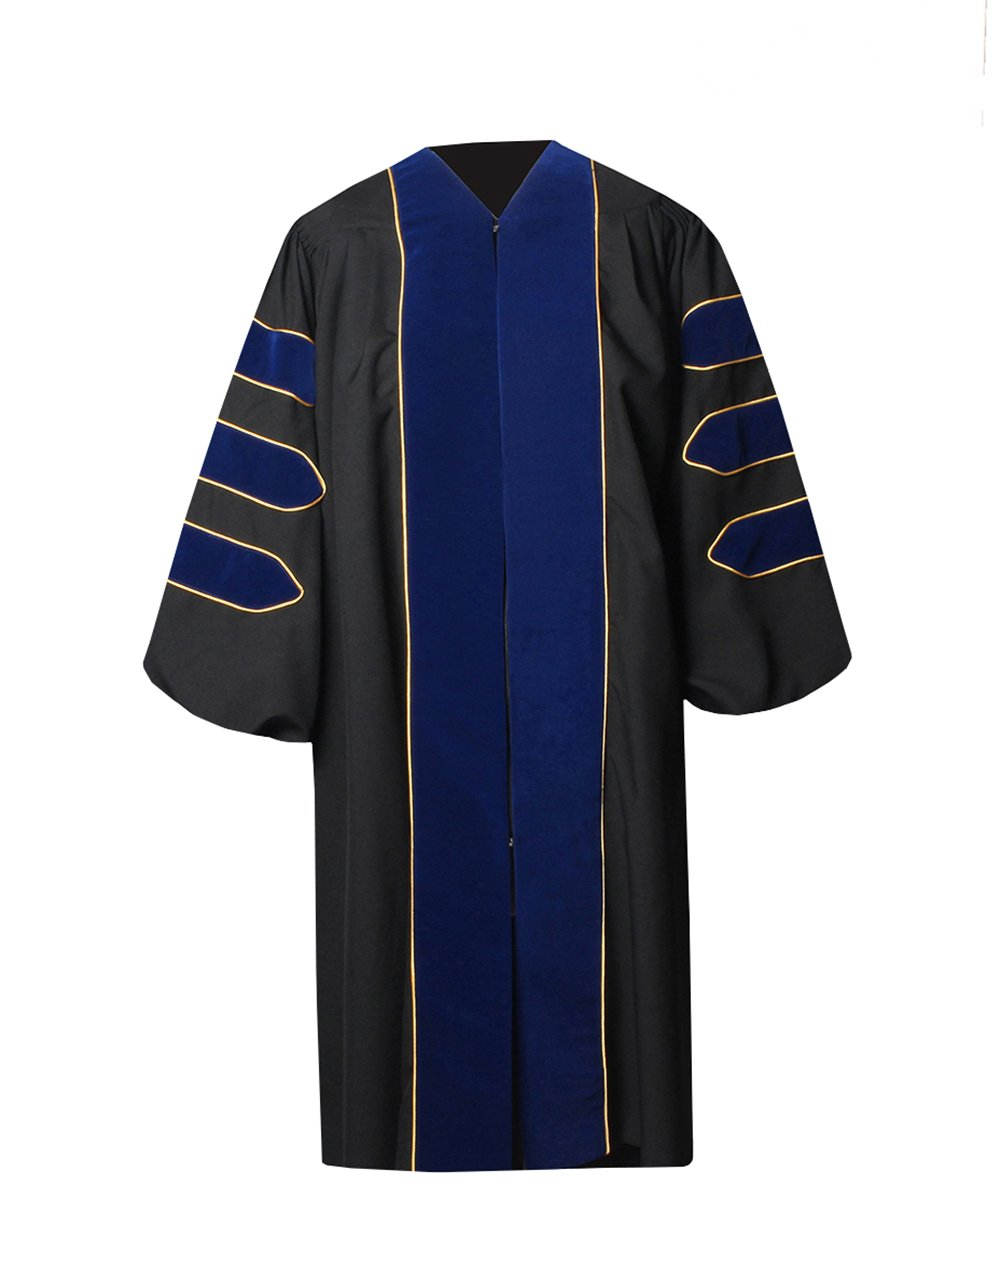 GraduationForYou Doctoral Gown With Velvet and Gold Piping,Royal Blue,45''(5'0''-5'2'')